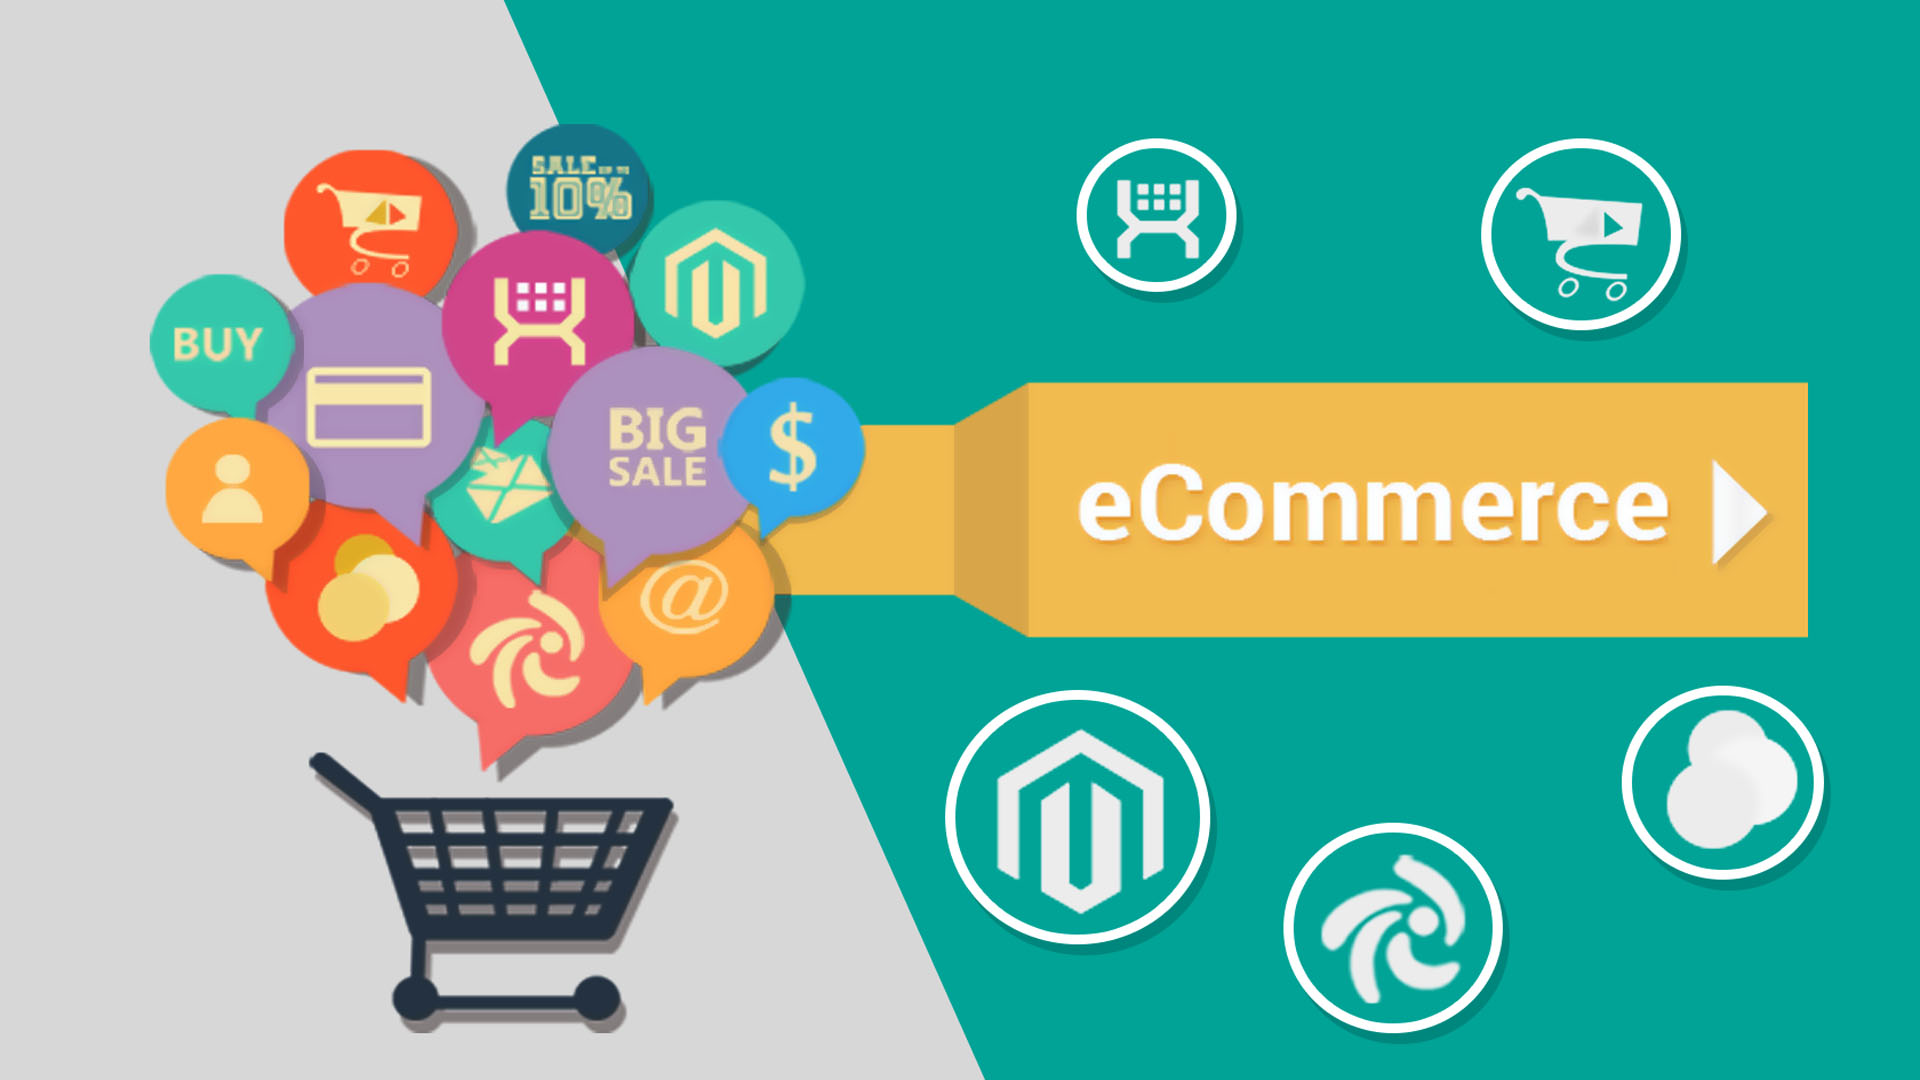 Professional eCommerce Web Design and eCommerce Development: What to Look For